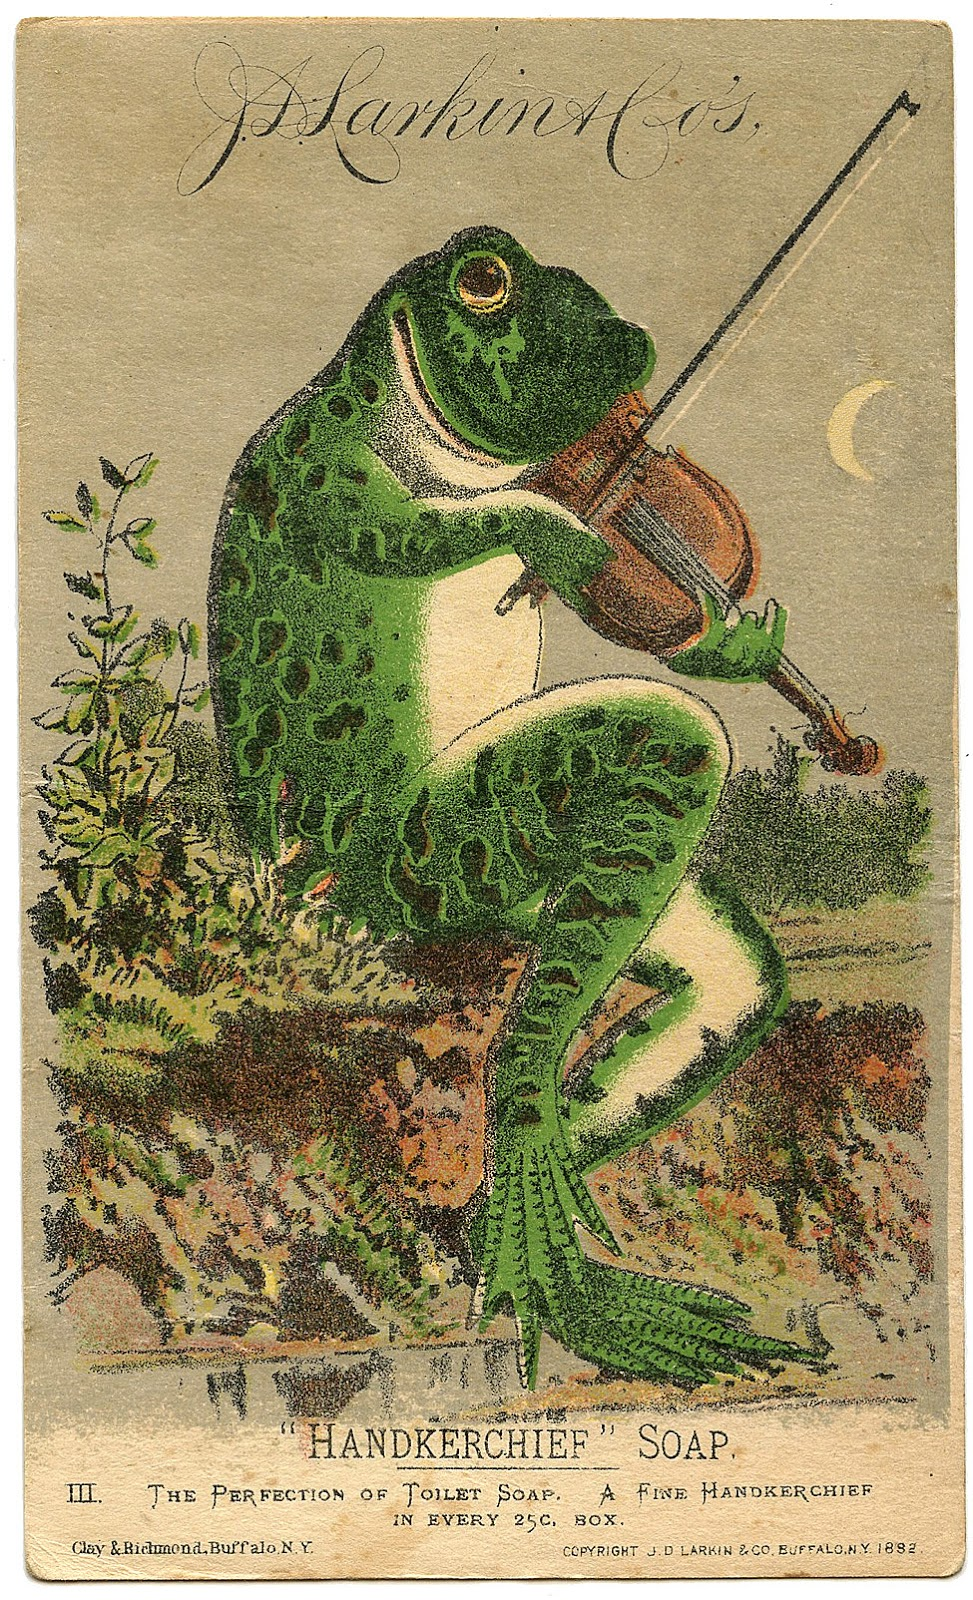 Vintage illustration of a frog playing the fiddle